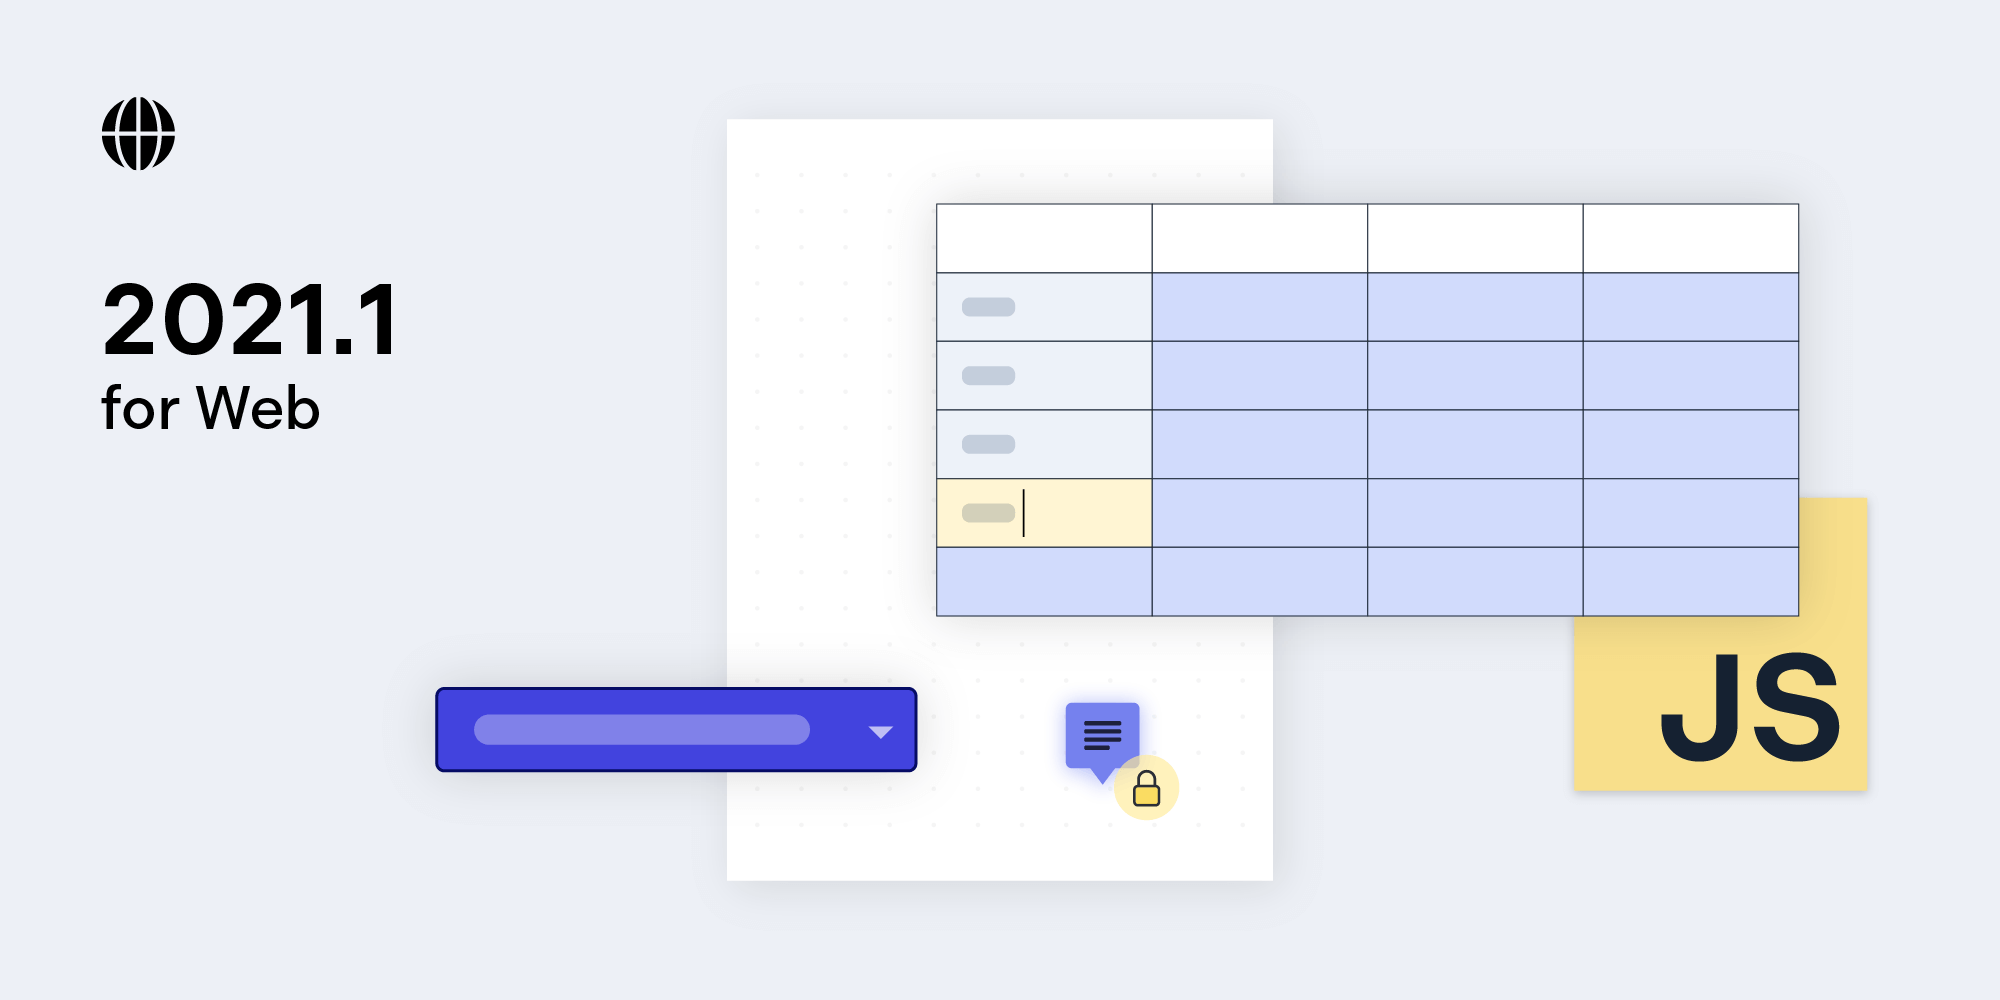 Illustration: PSPDFKit for Web 2021.1: Collaboration Permissions